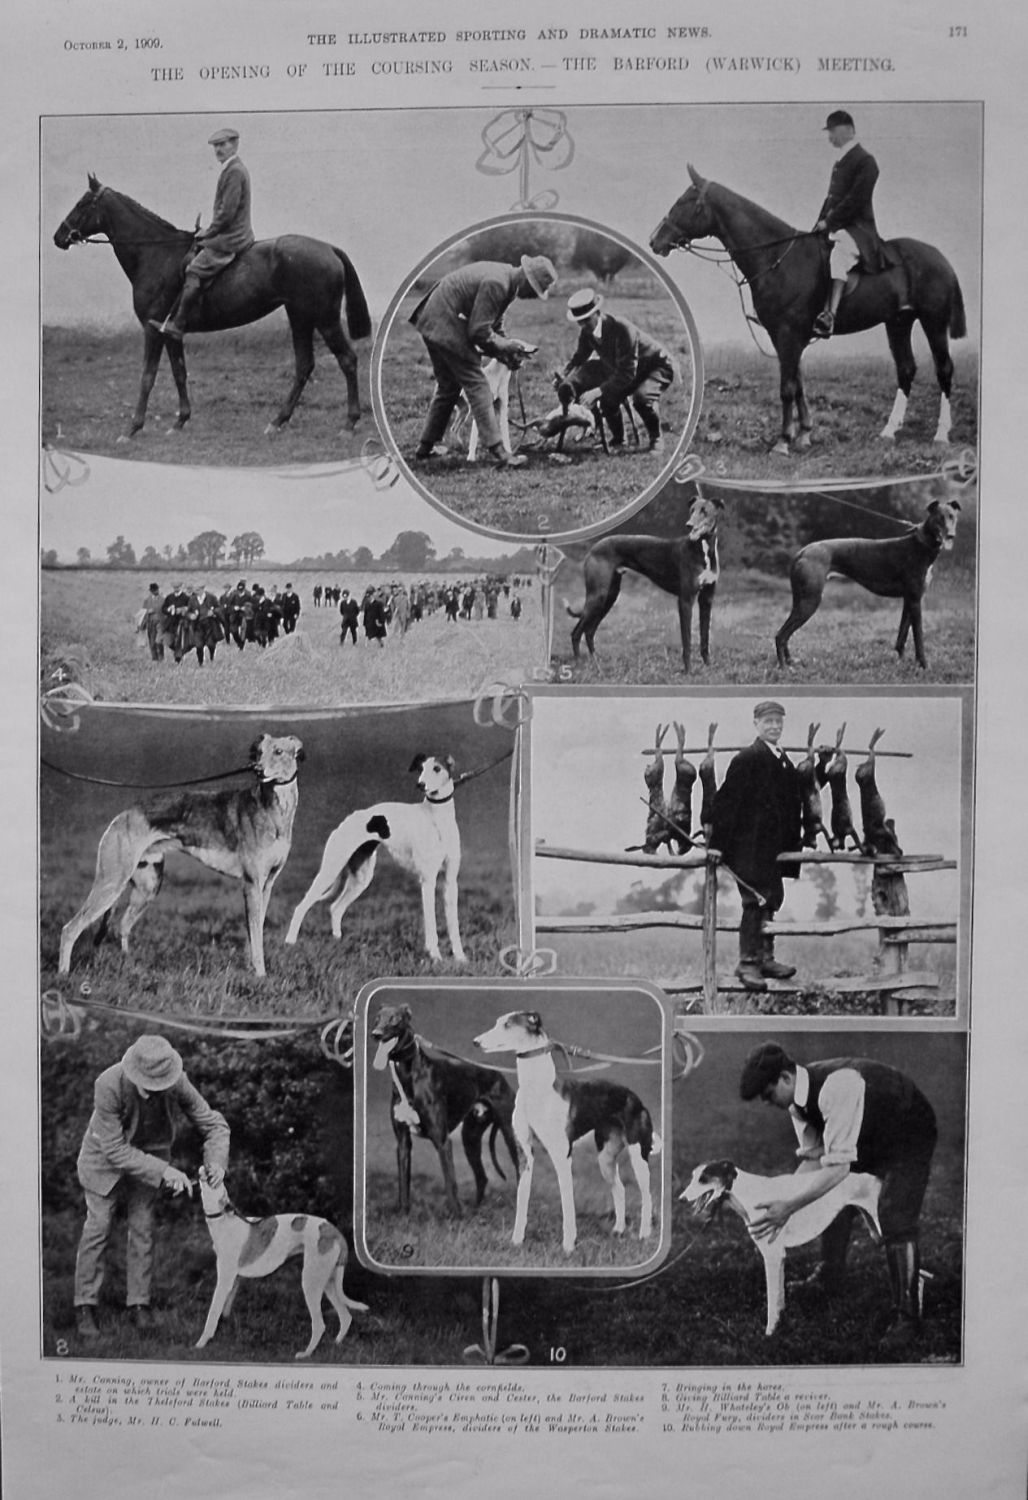 Opening of the Coursing Season. - The Barford (Warwick) Meeting. 1909